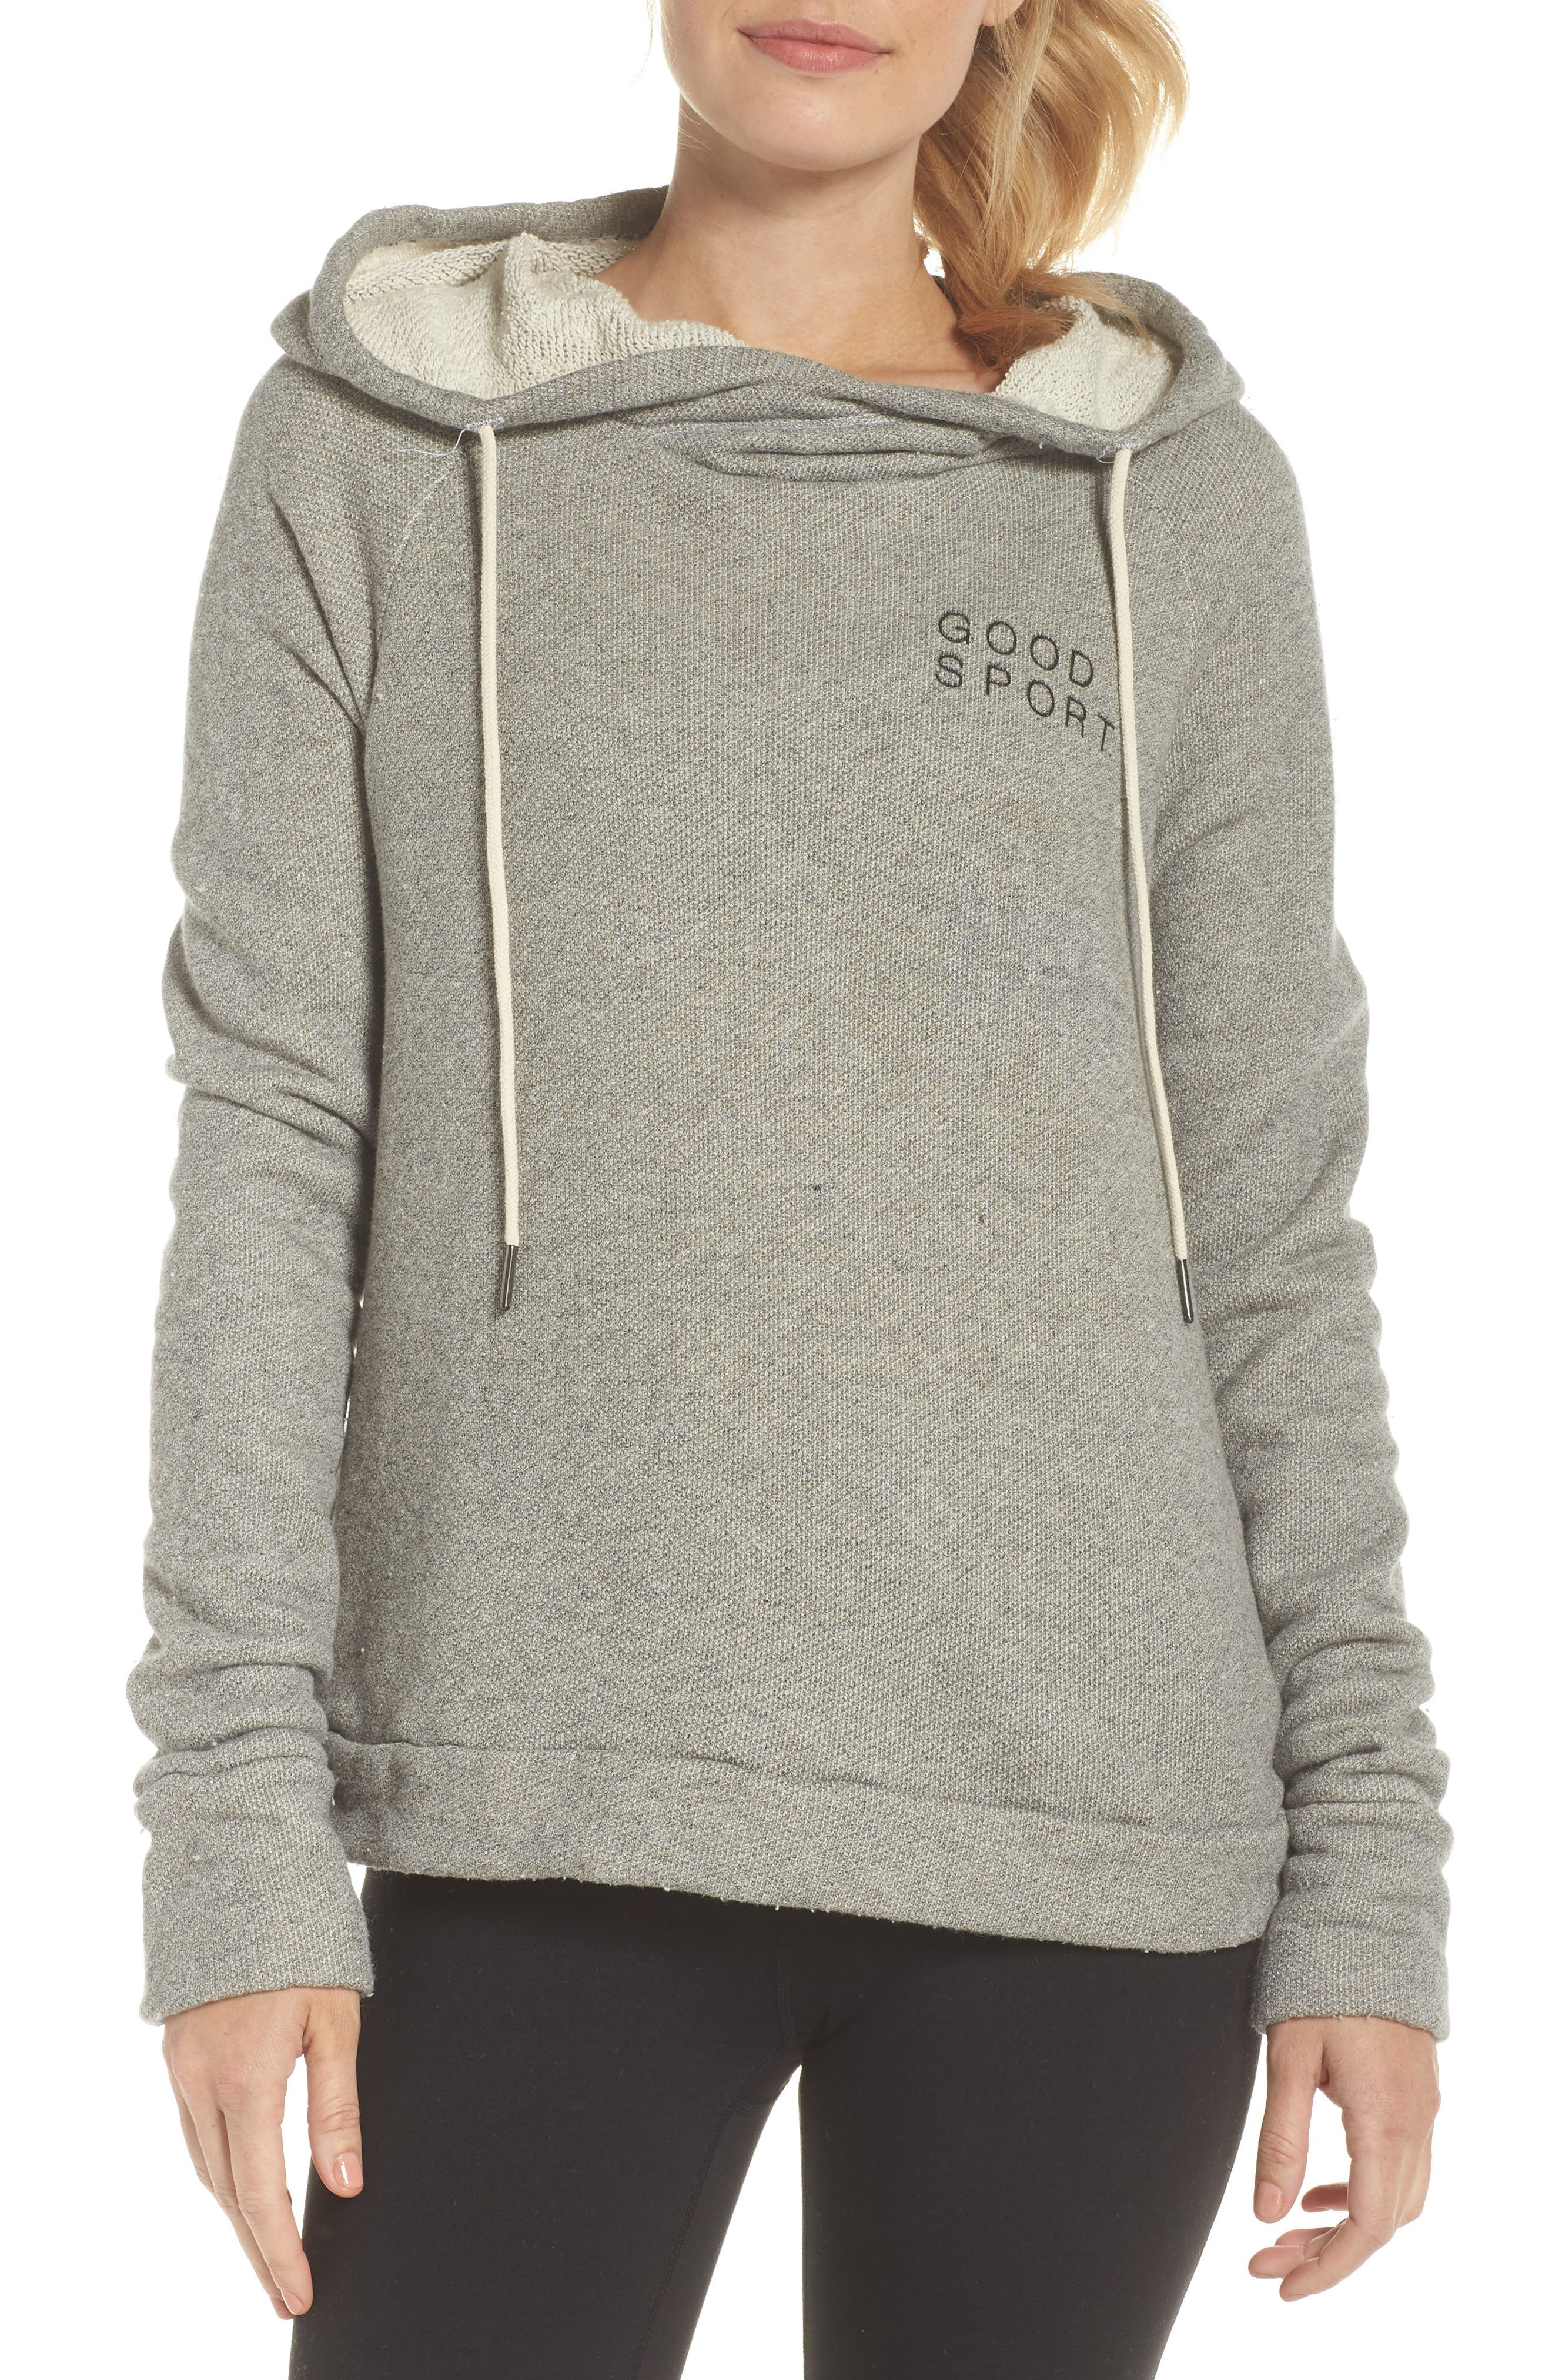 Dominic Good Sport Hoodie,                         Main,                         color, HEATHER